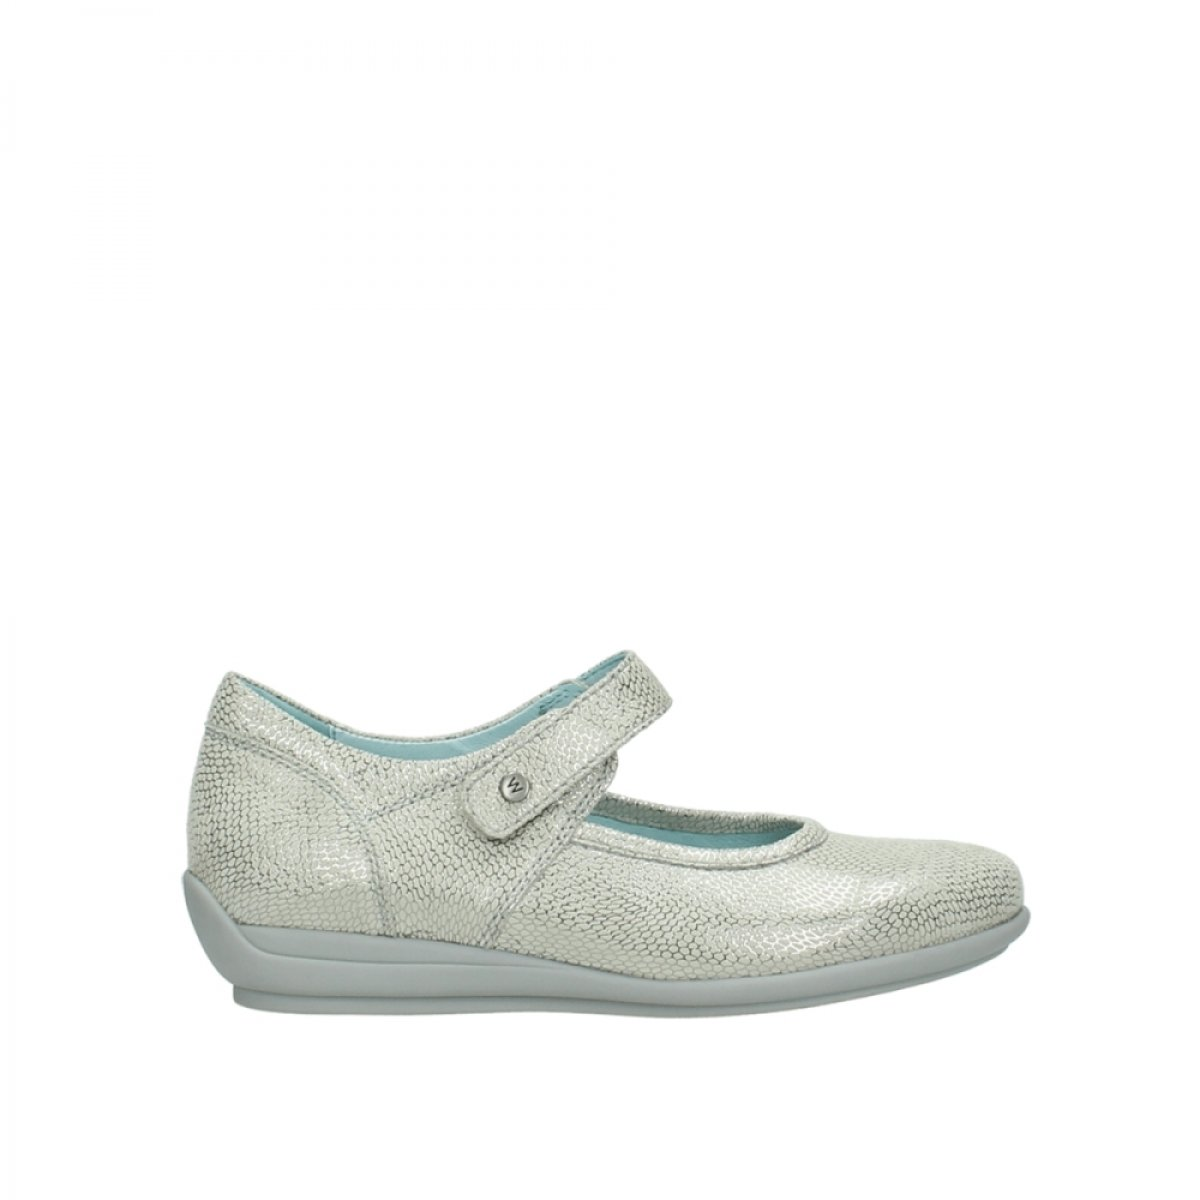 Wolky Comfort Mary Janes Noble B01MZ9X6XM 37 EU|20120 Off White/Silver Printed Leather